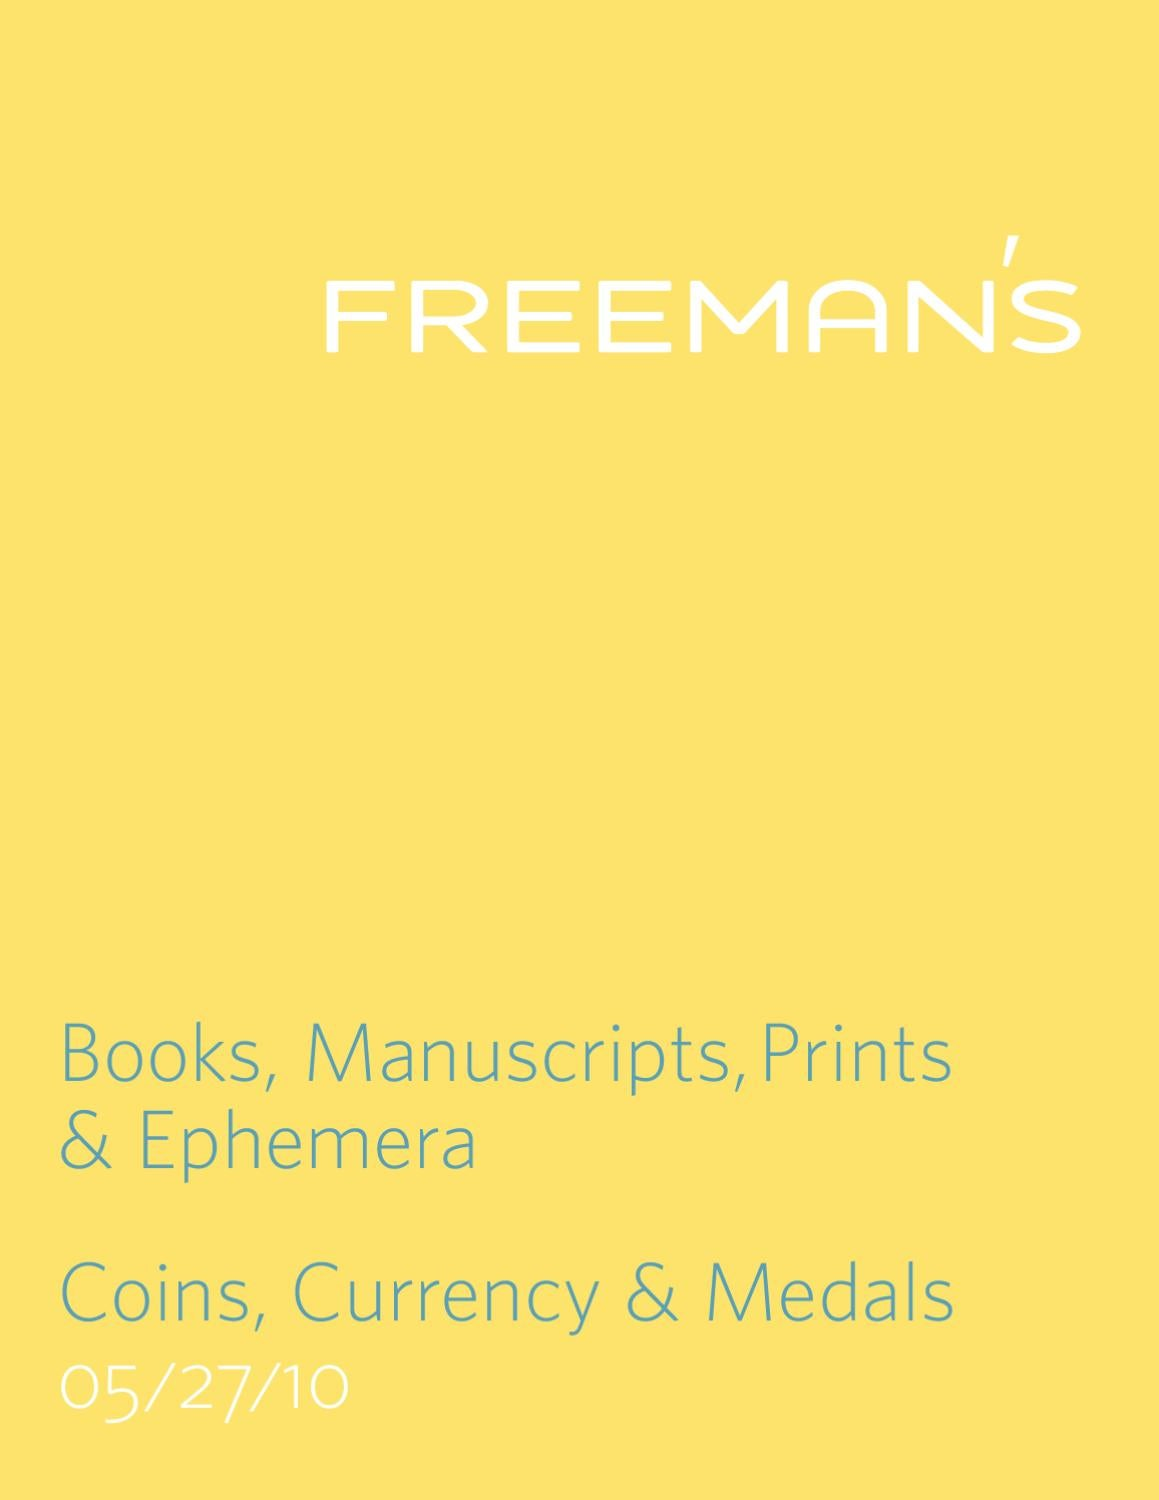 Coins, Currency & Medals by Freeman\'s - issuu